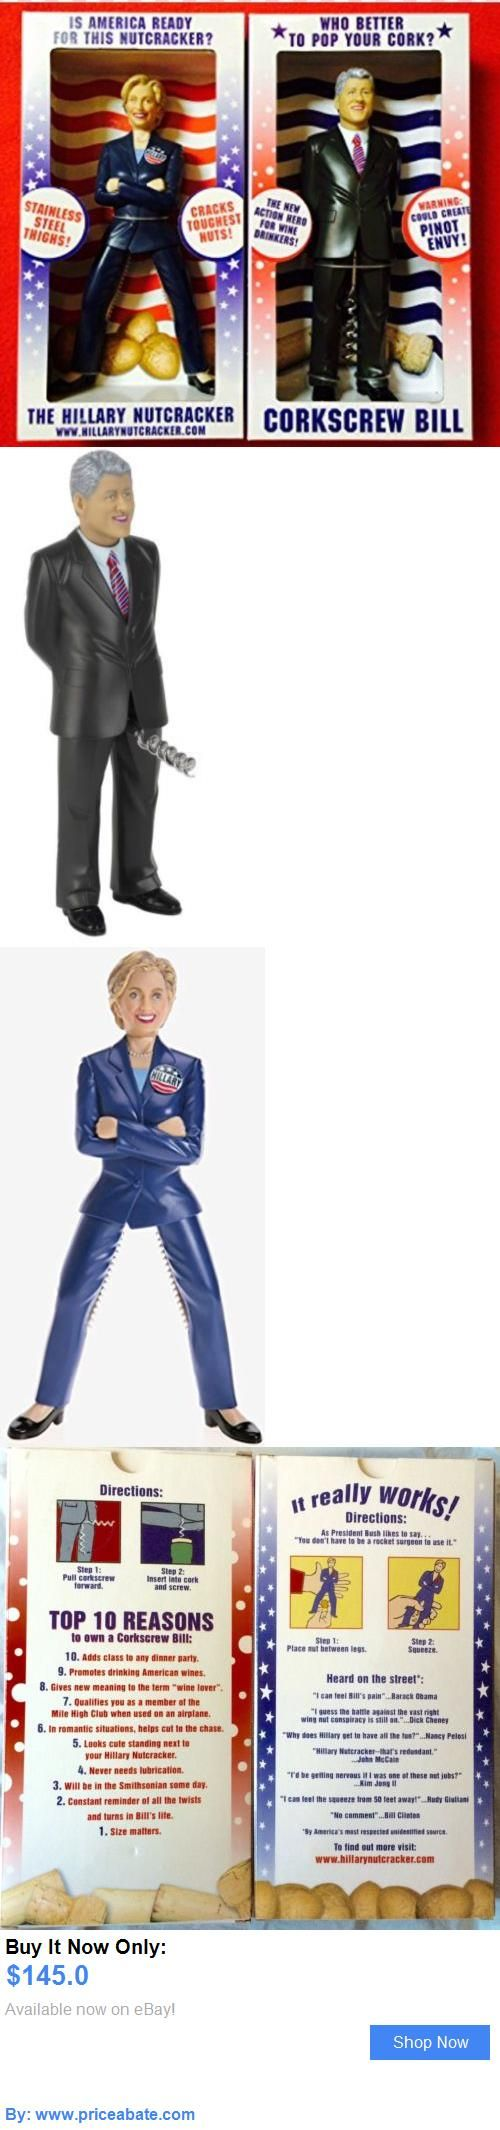 Hillary Clinton: Bill And Hillary Clinton Corkscrew And Nutcracker (Csb Comm..,2008) New BUY IT NOW ONLY: $145.0 #priceabateHillaryClinton OR #priceabate